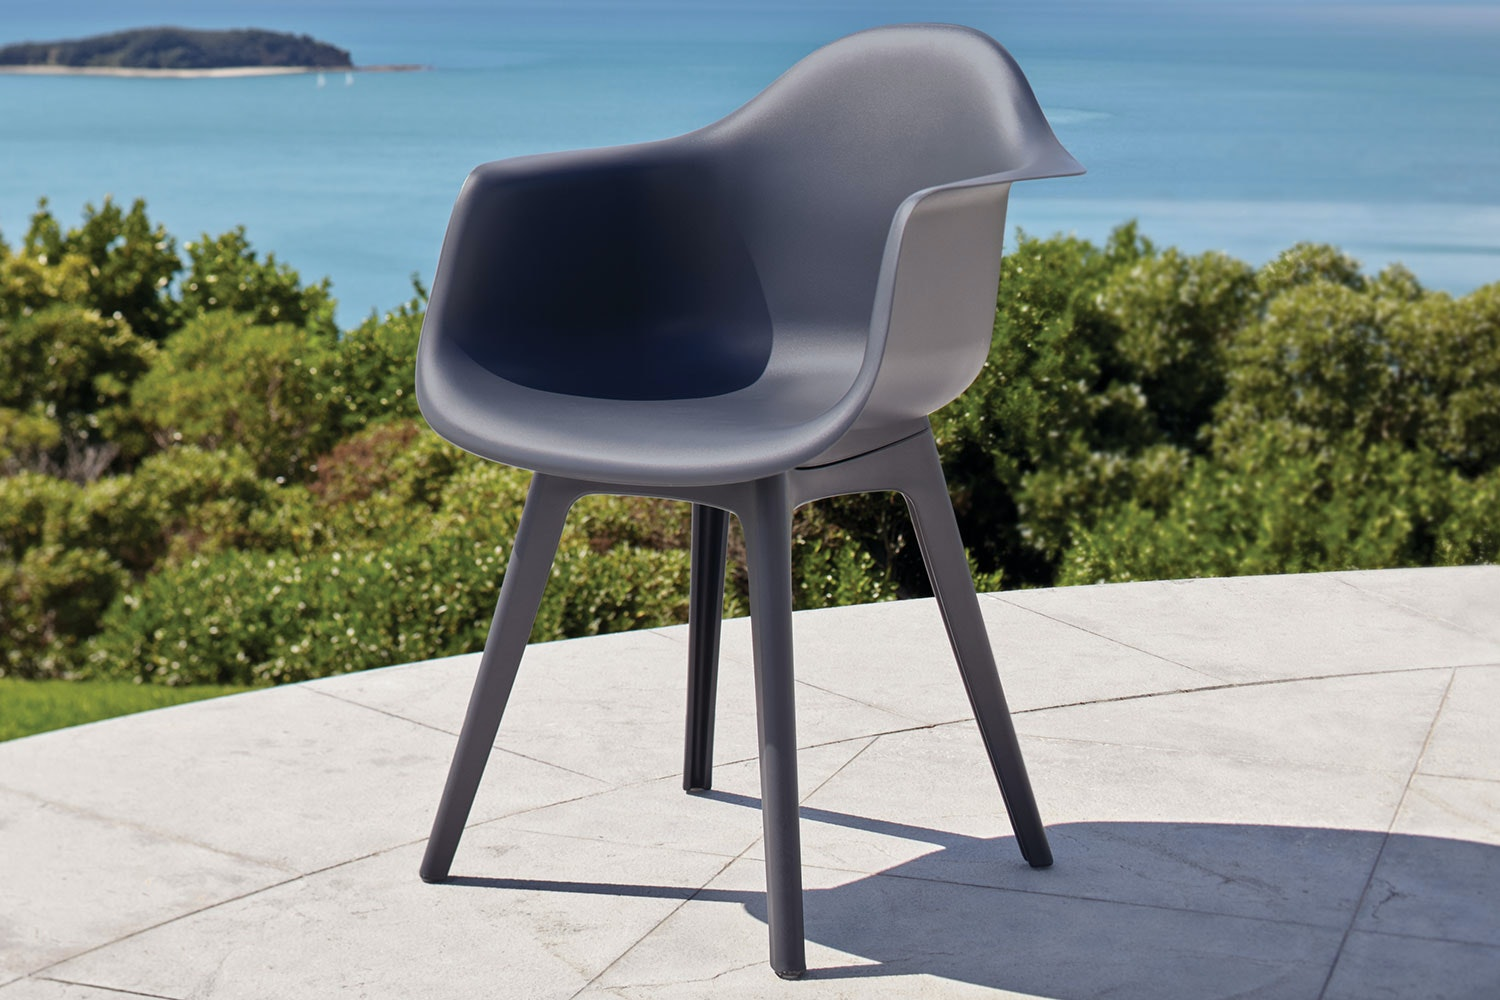 Floret Outdoor Dining Chair - Gunmetal